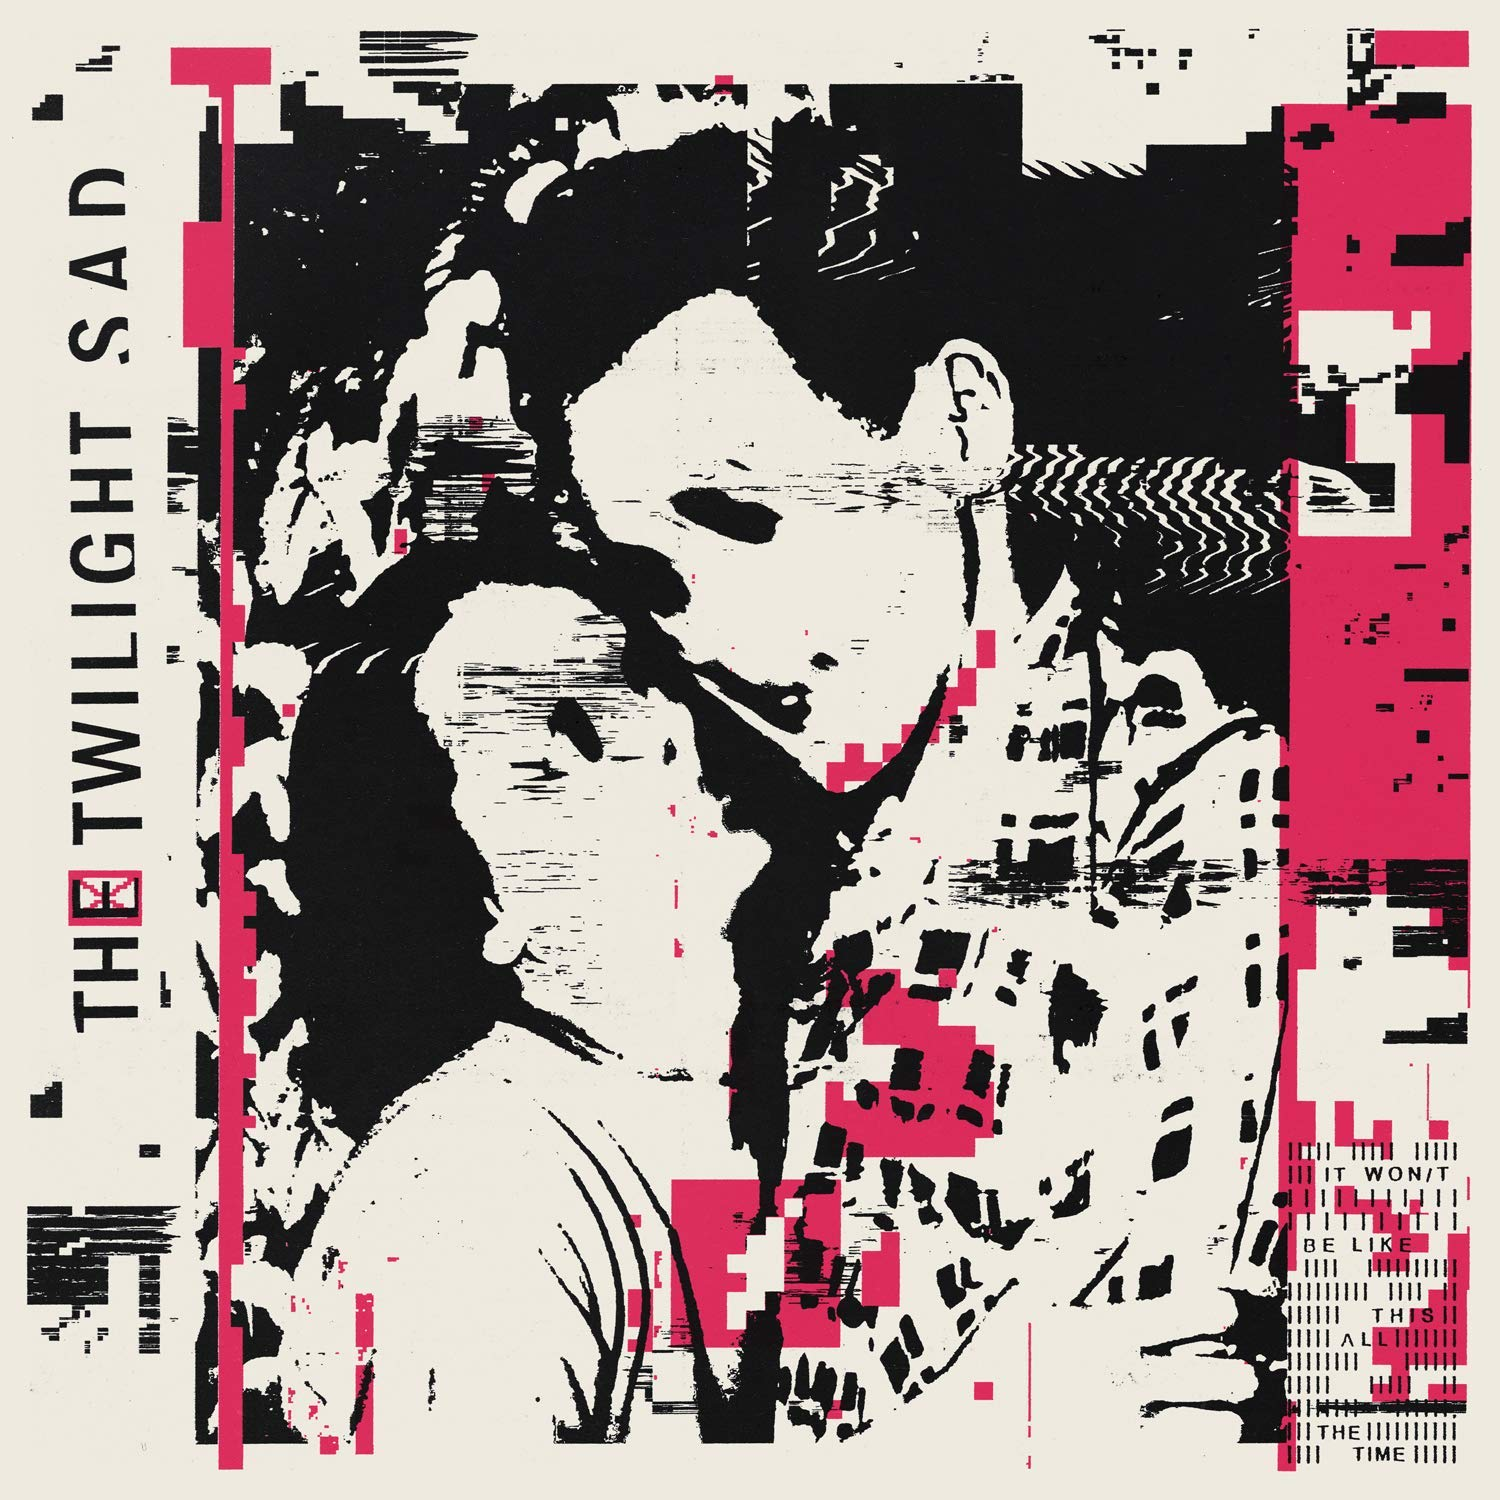 The Twilight Sad - It Won't Be Like This All The Time [Indie Exclusive Limited Edition LP]